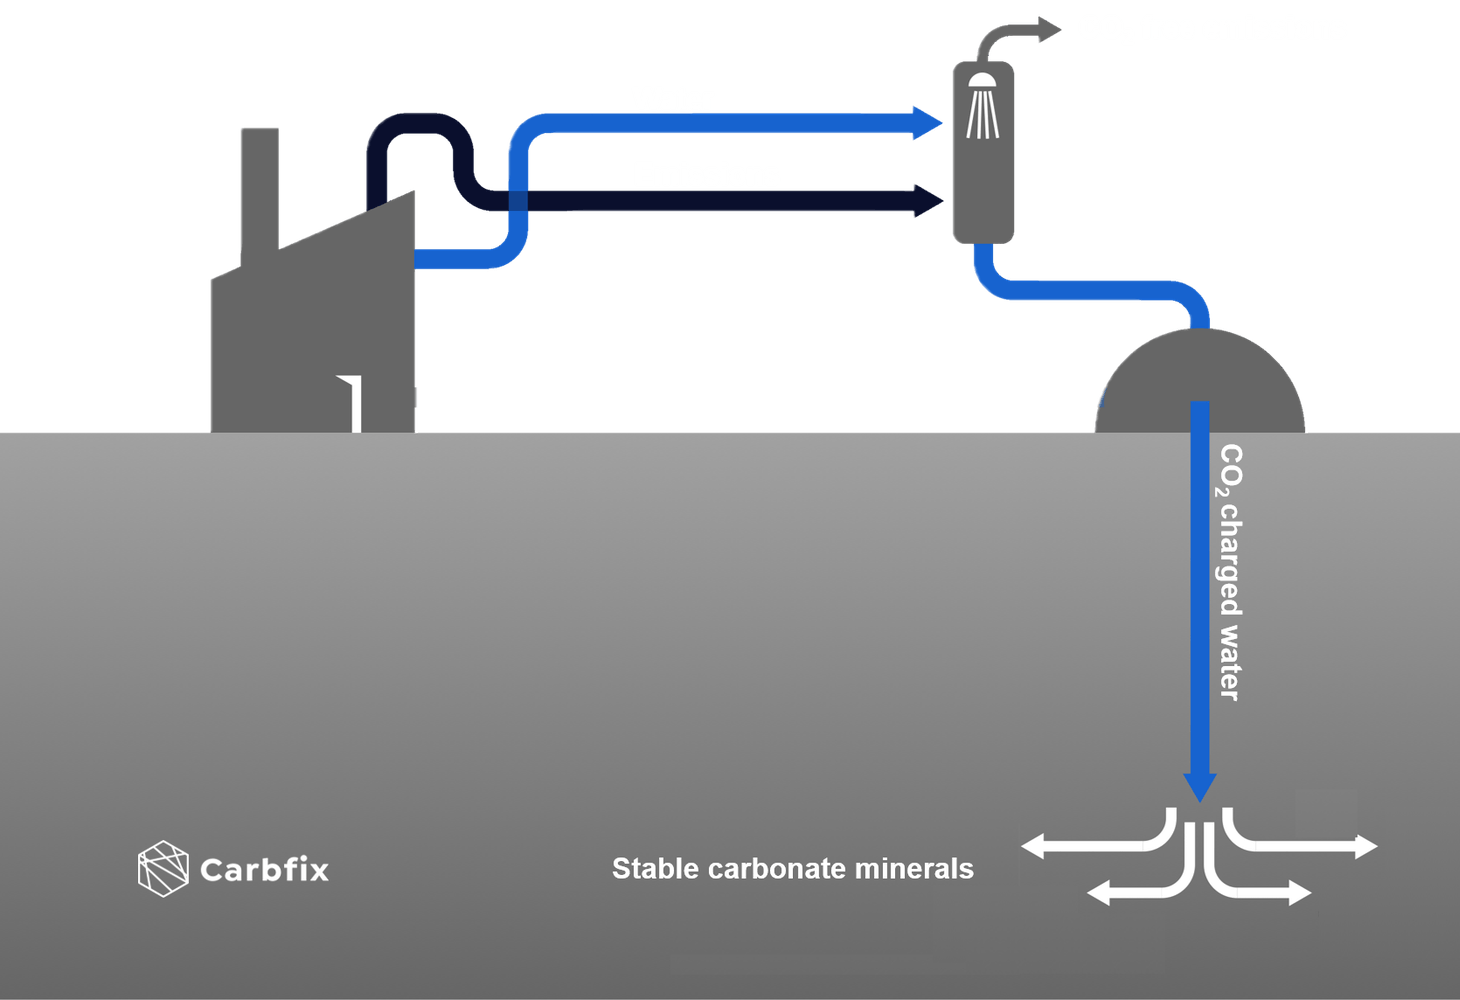 Process diagram for Carbfix implementation at a geothermal power plant. Water and emissions exit the plant and go through a scrubbing tower. There CO2 (and H2S) is dissolved in water and the CO2 charged water is injected into the bedrock.